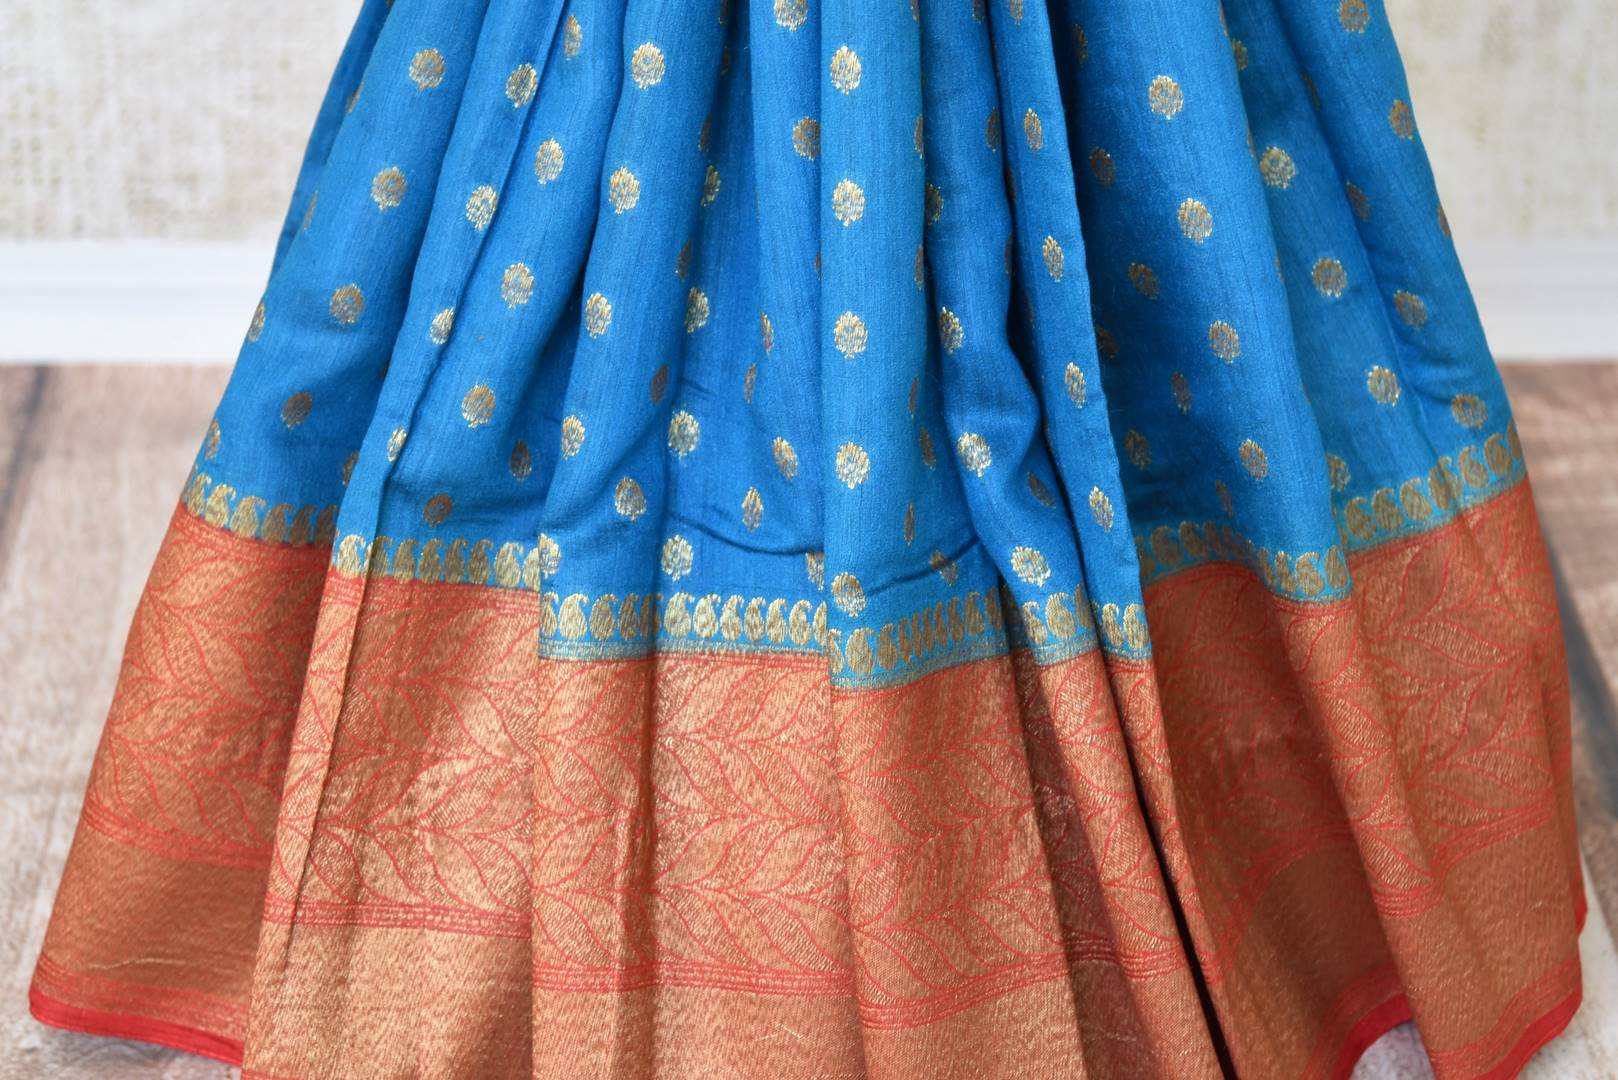 Buy blue tussar Benarasi saree online in USA with red zari border and zari buta. Make an elegant ethnic fashion statement at parties, weddings and special occasions with a splendid collection of Indian designer sarees, Benarasi saris, wedding sarees from Pure Elegance Indian clothing store in USA or shop online.-pleats